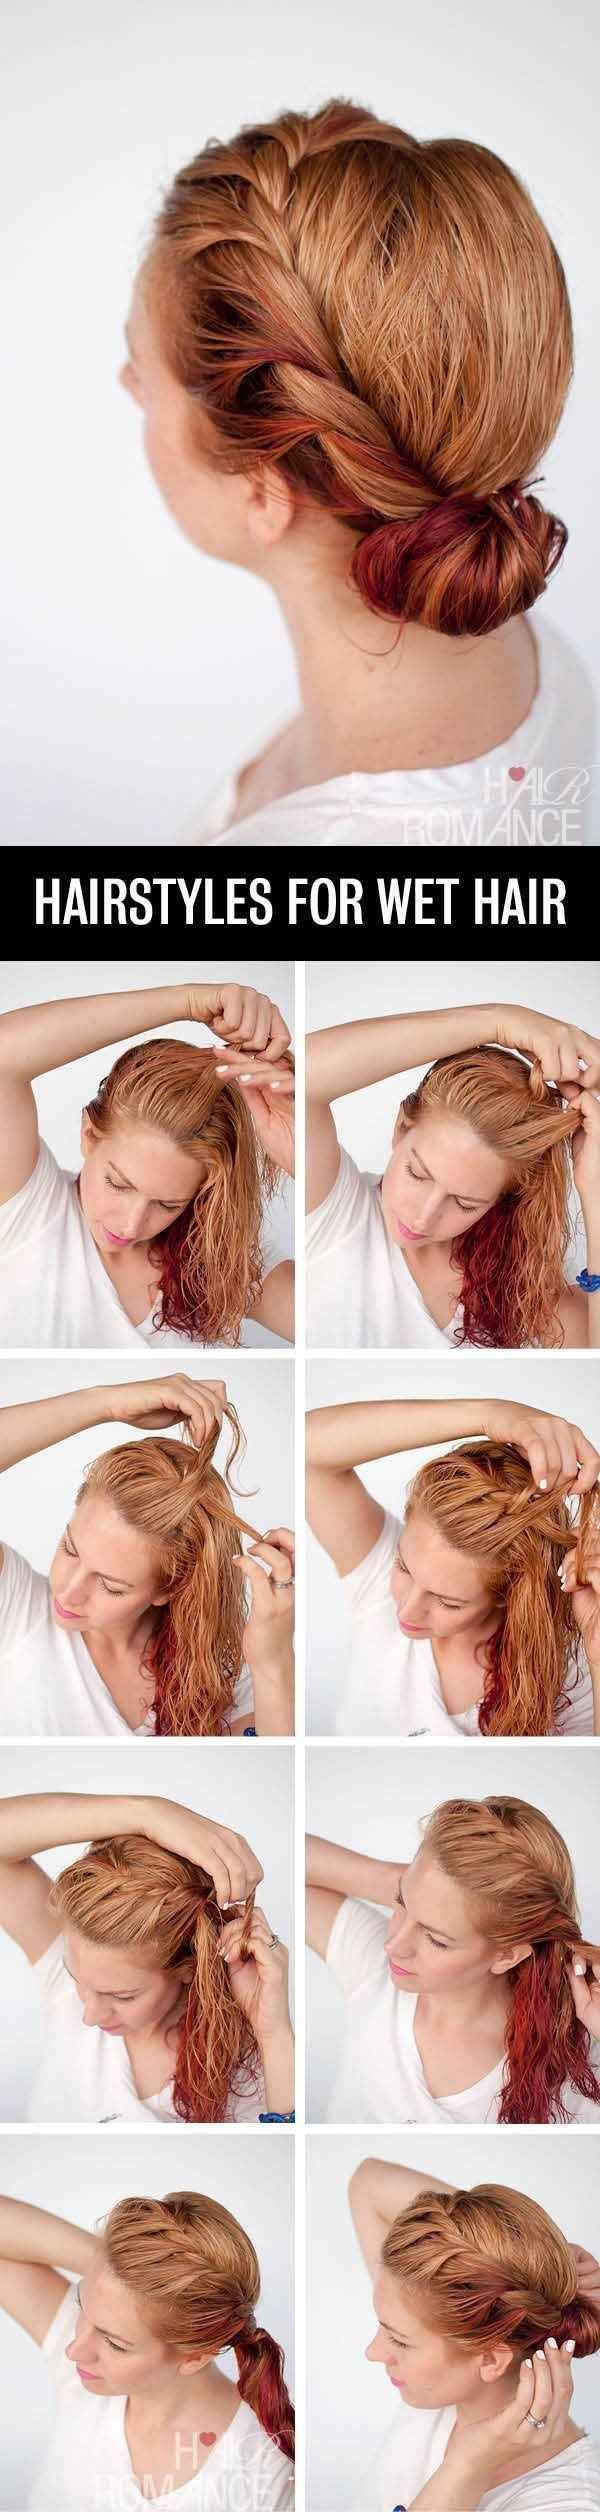 Crown braid wet hair and roll it into a bun hairstyles you can